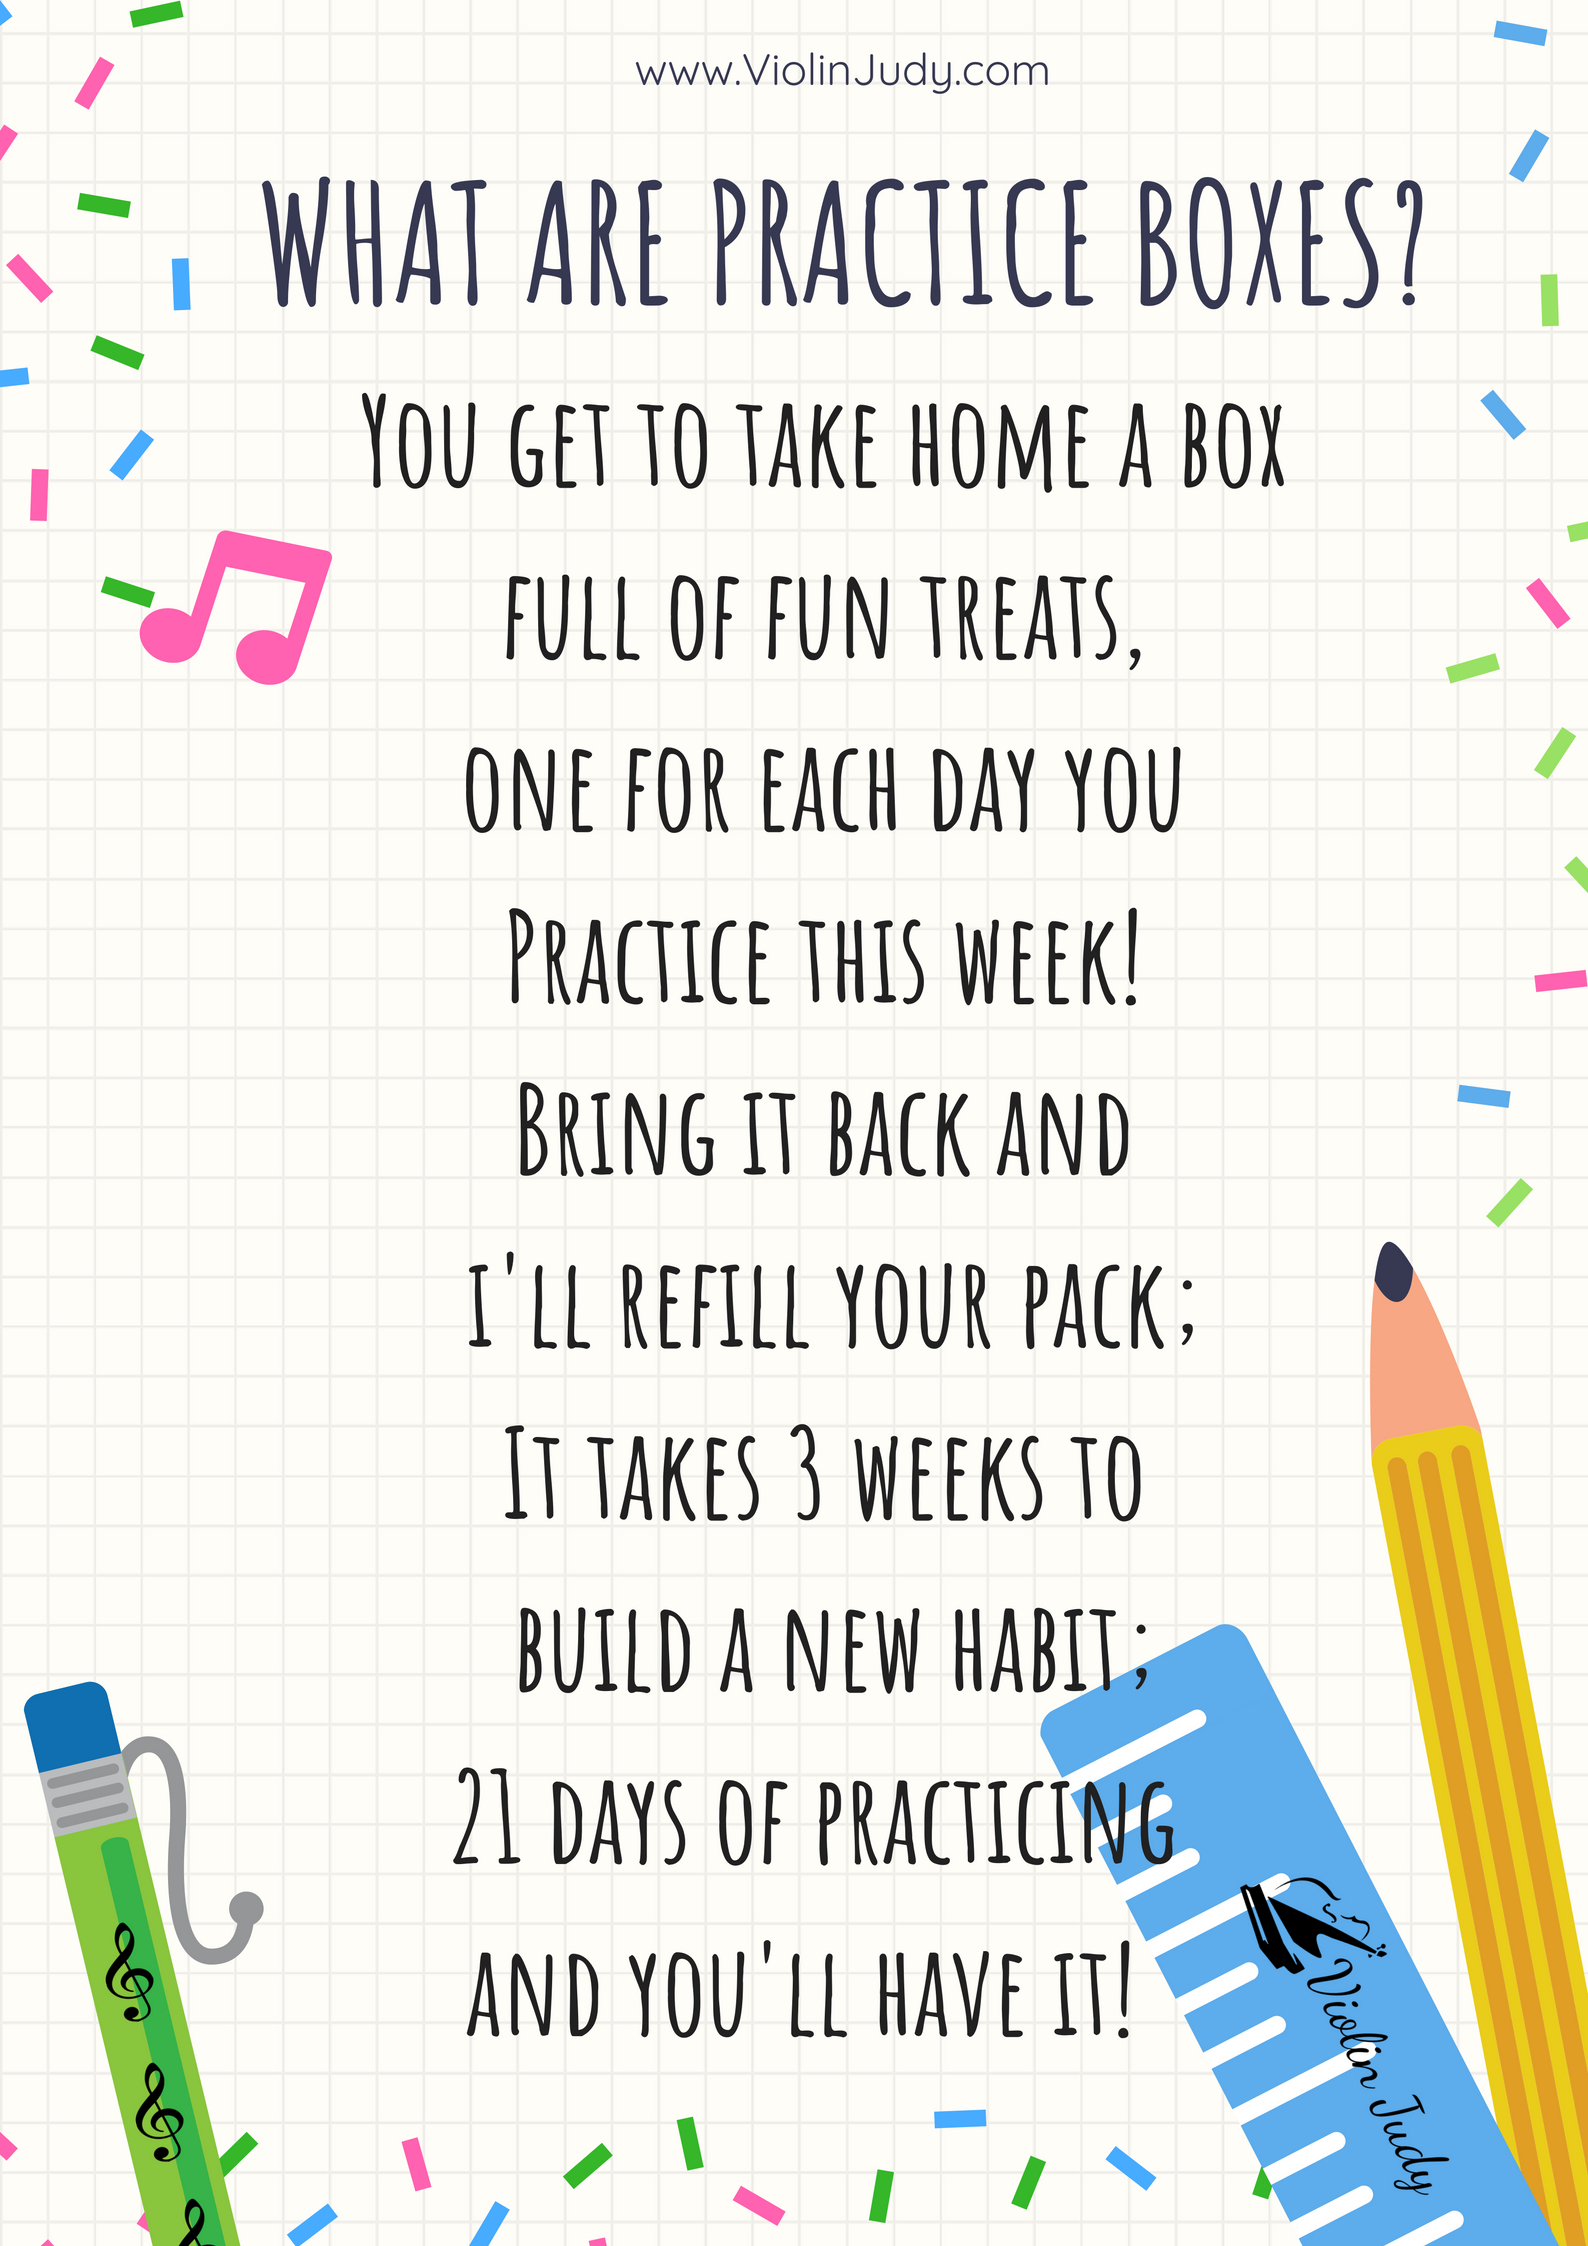 Practice Boxes: A fun treat for your students! - ViolinJudy